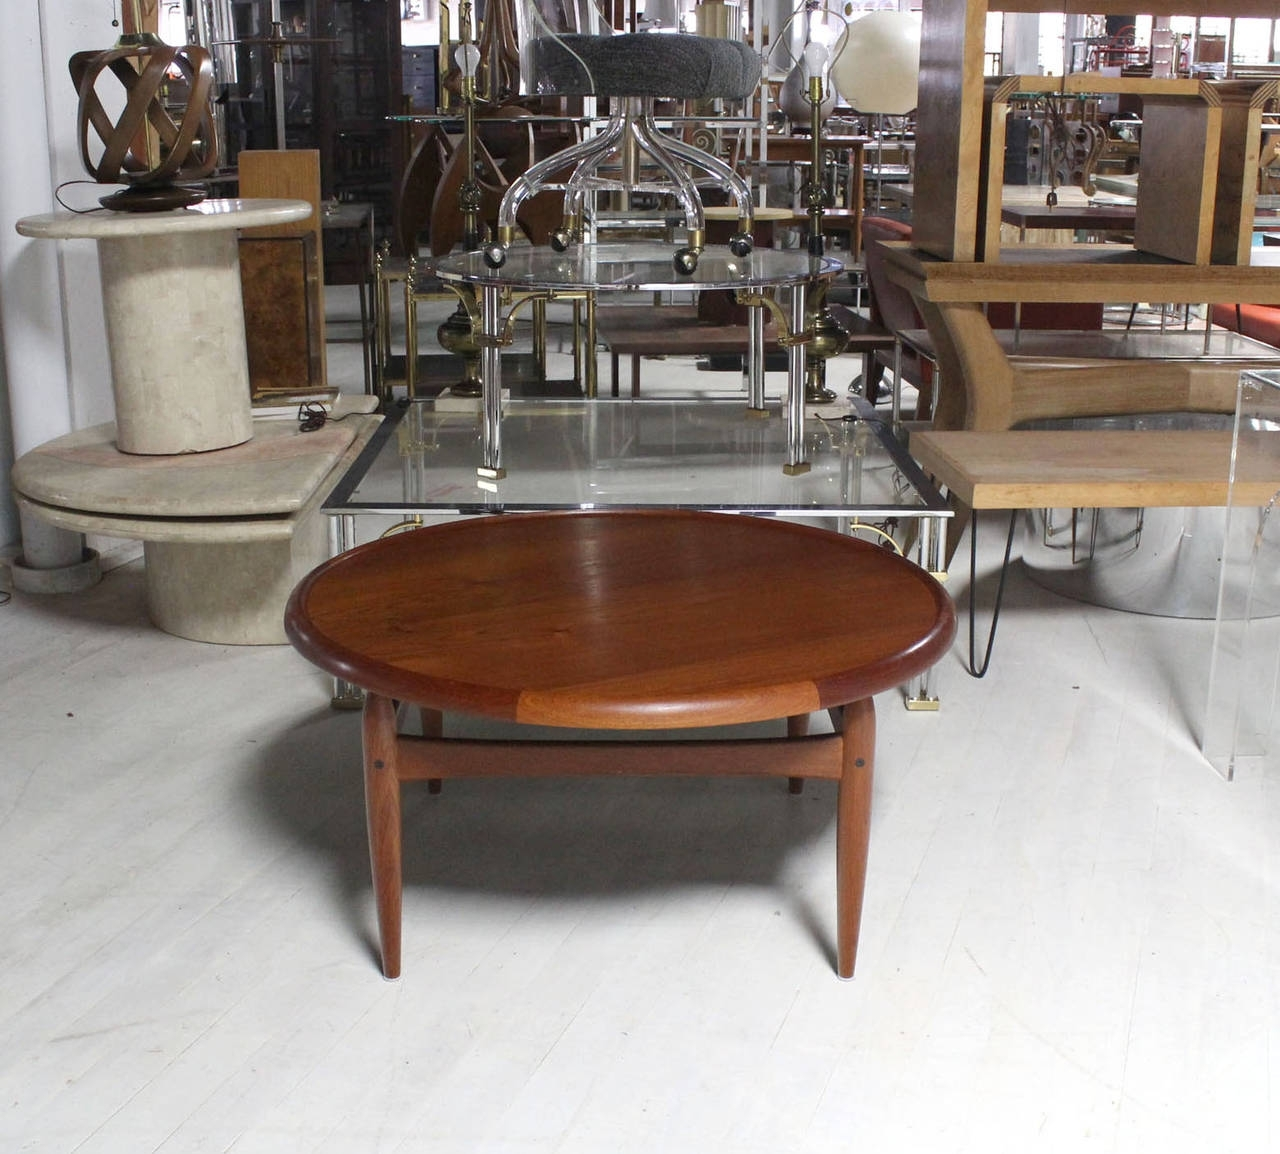 Reversible Flip-Top Danish Modern Round Teak Coffee Table For Sale intended for Round Teak Coffee Tables (Image 17 of 30)